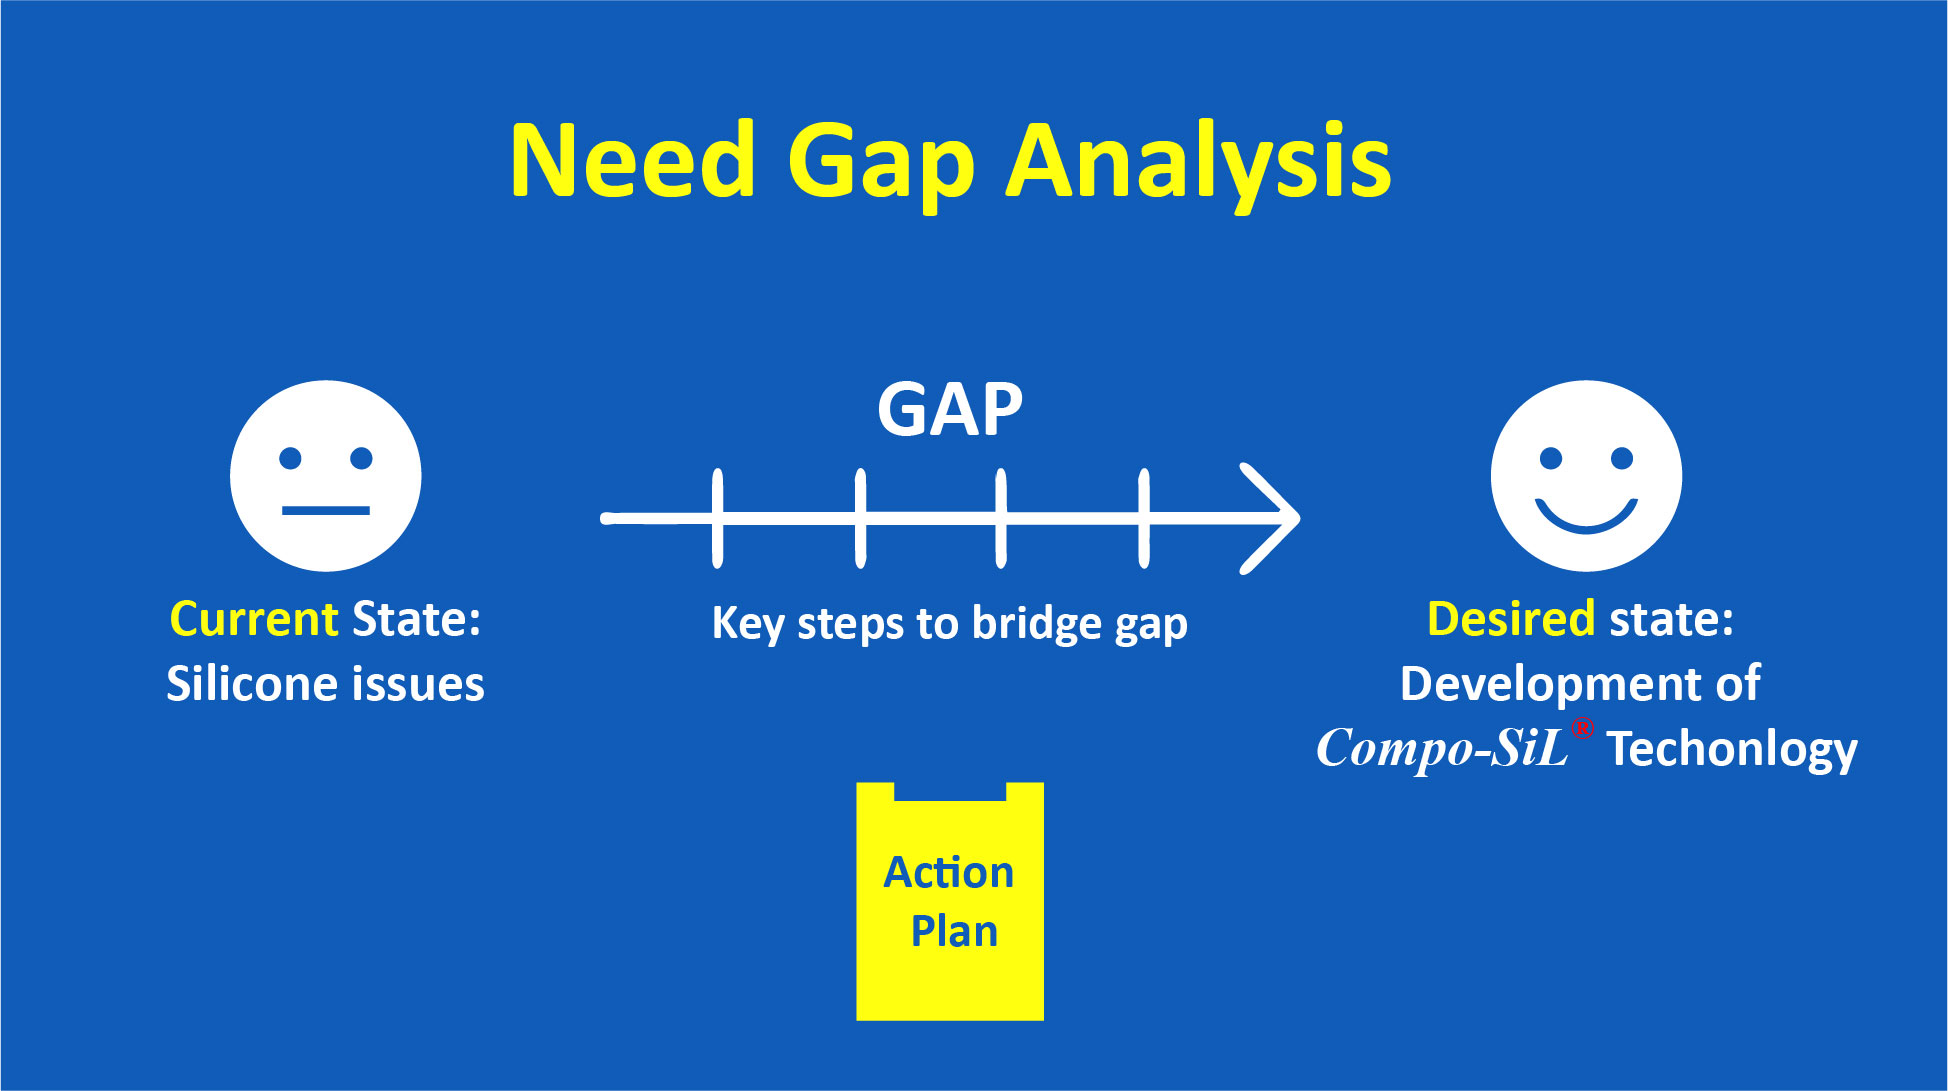 Need Gap Analysis